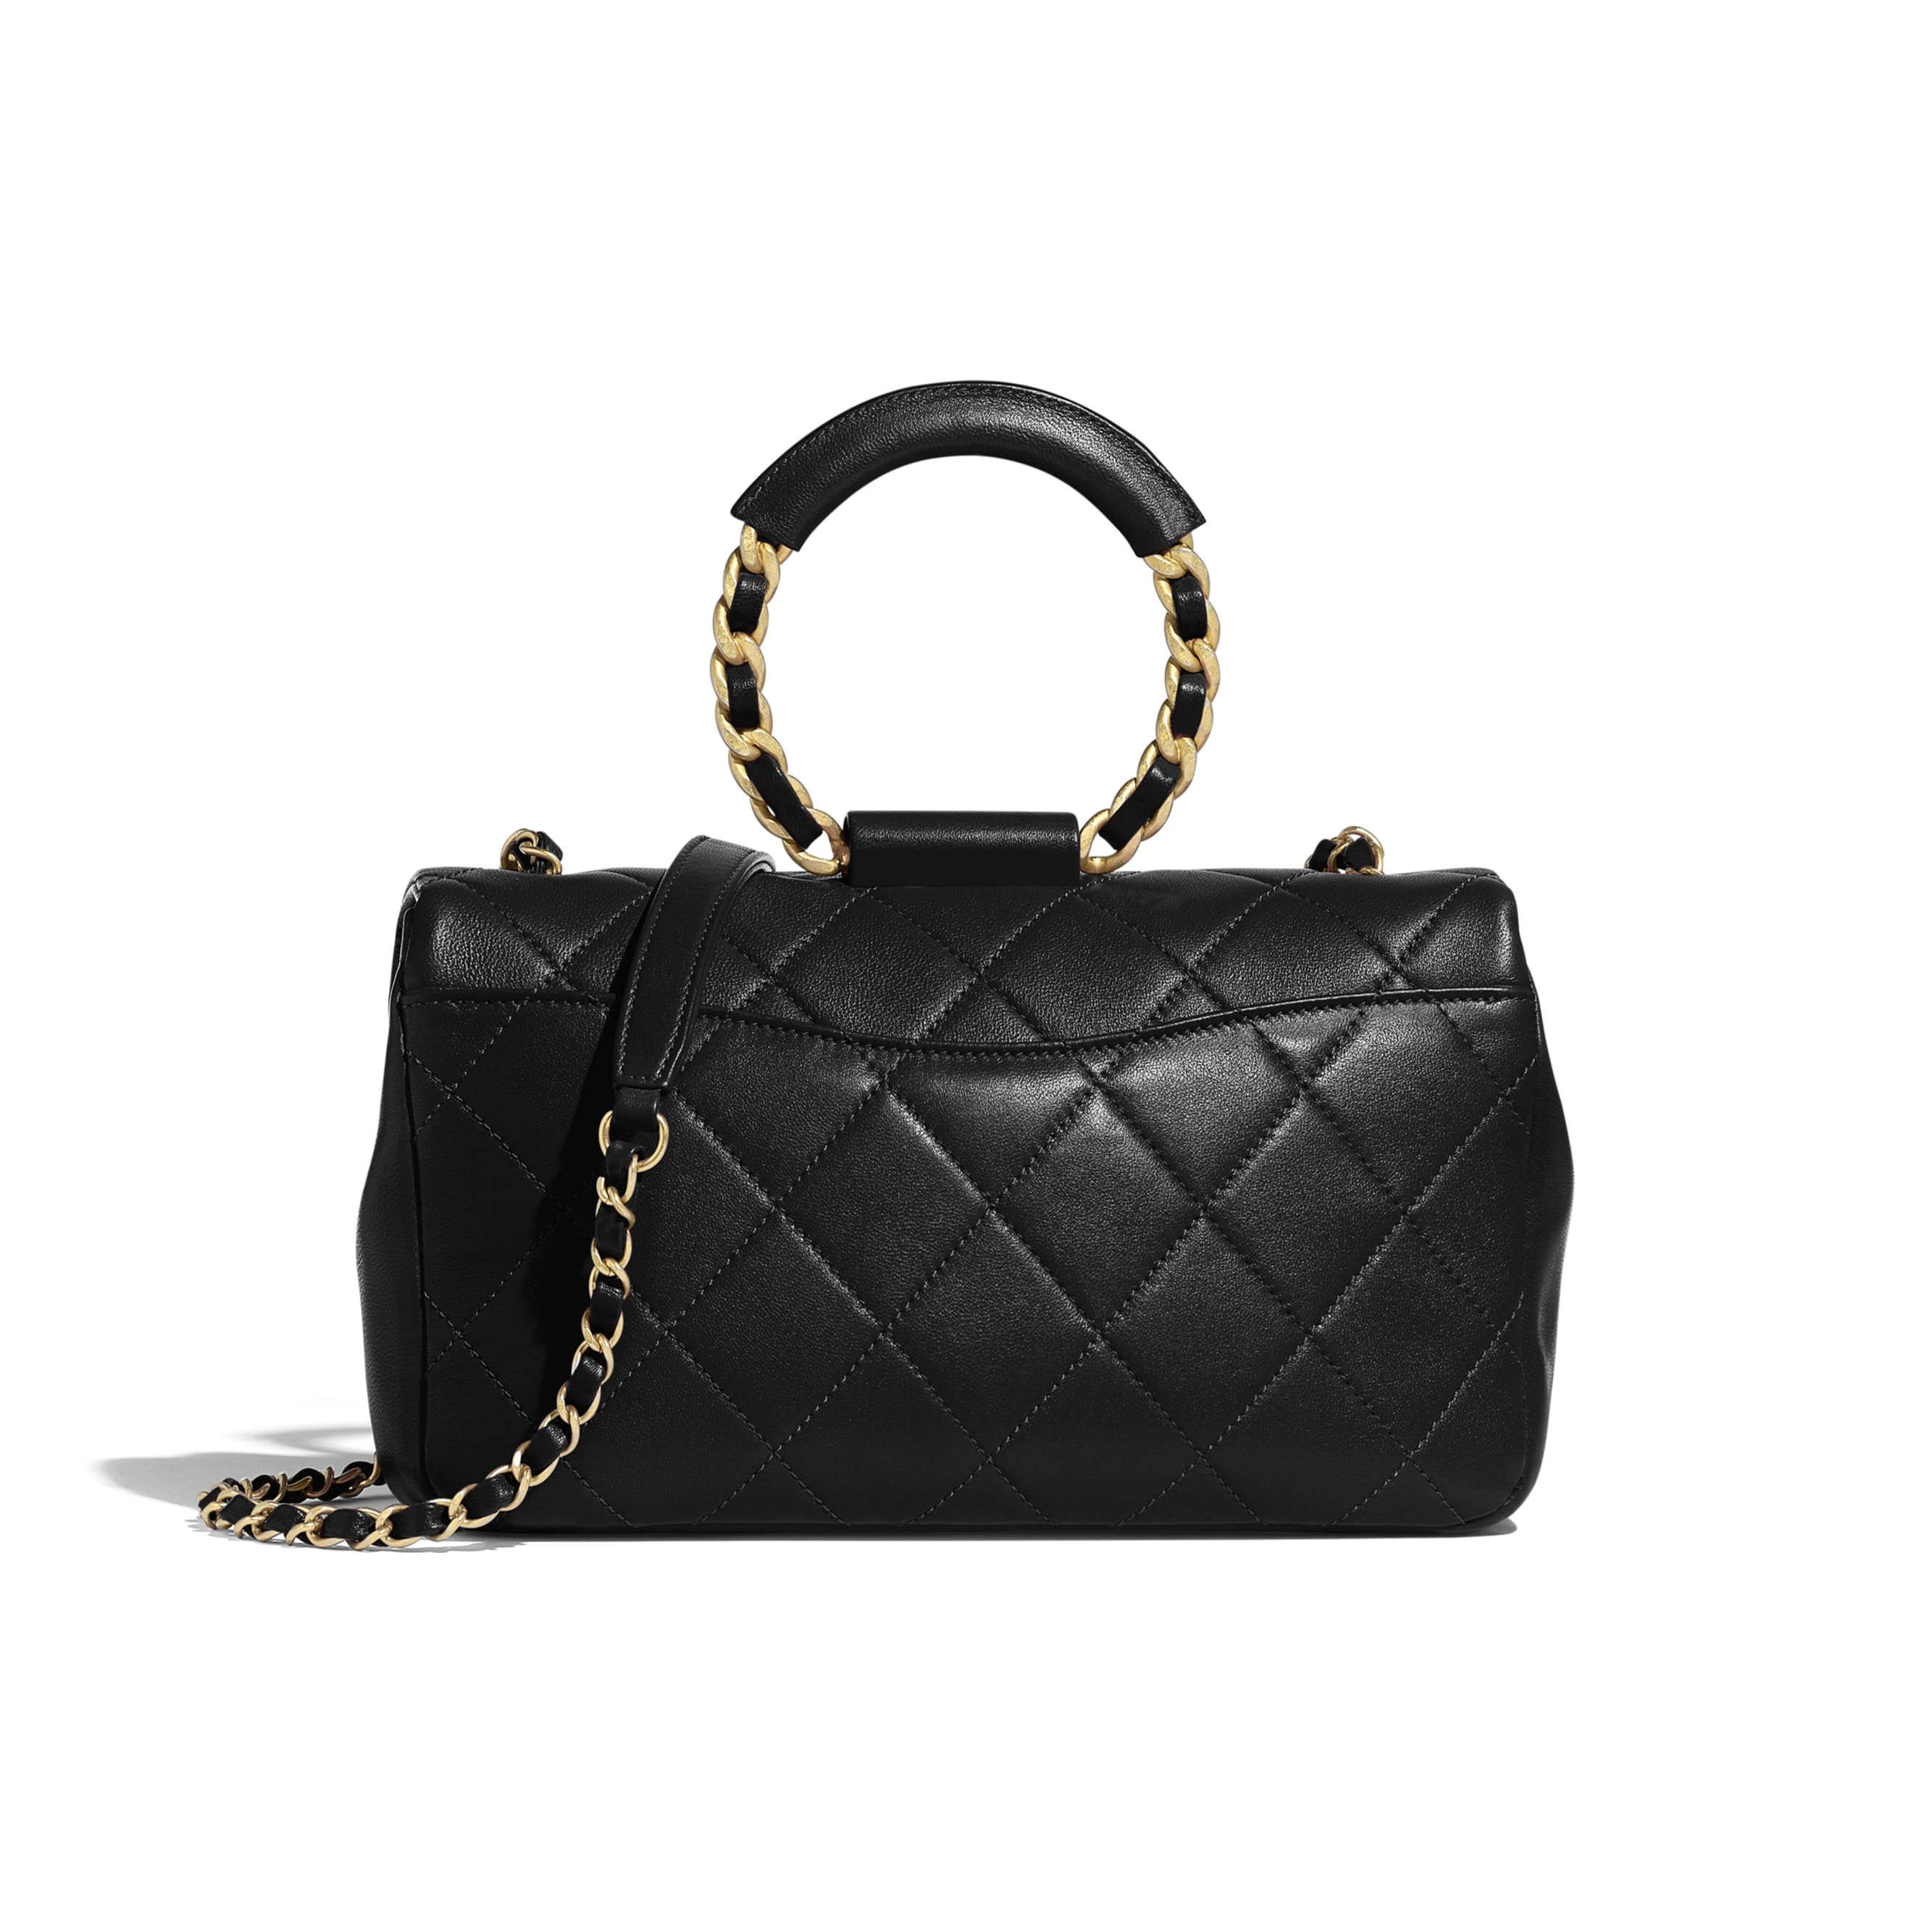 Flap Bag - Black - Lambskin & Gold Metal  - CHANEL - Alternative view - see standard sized version